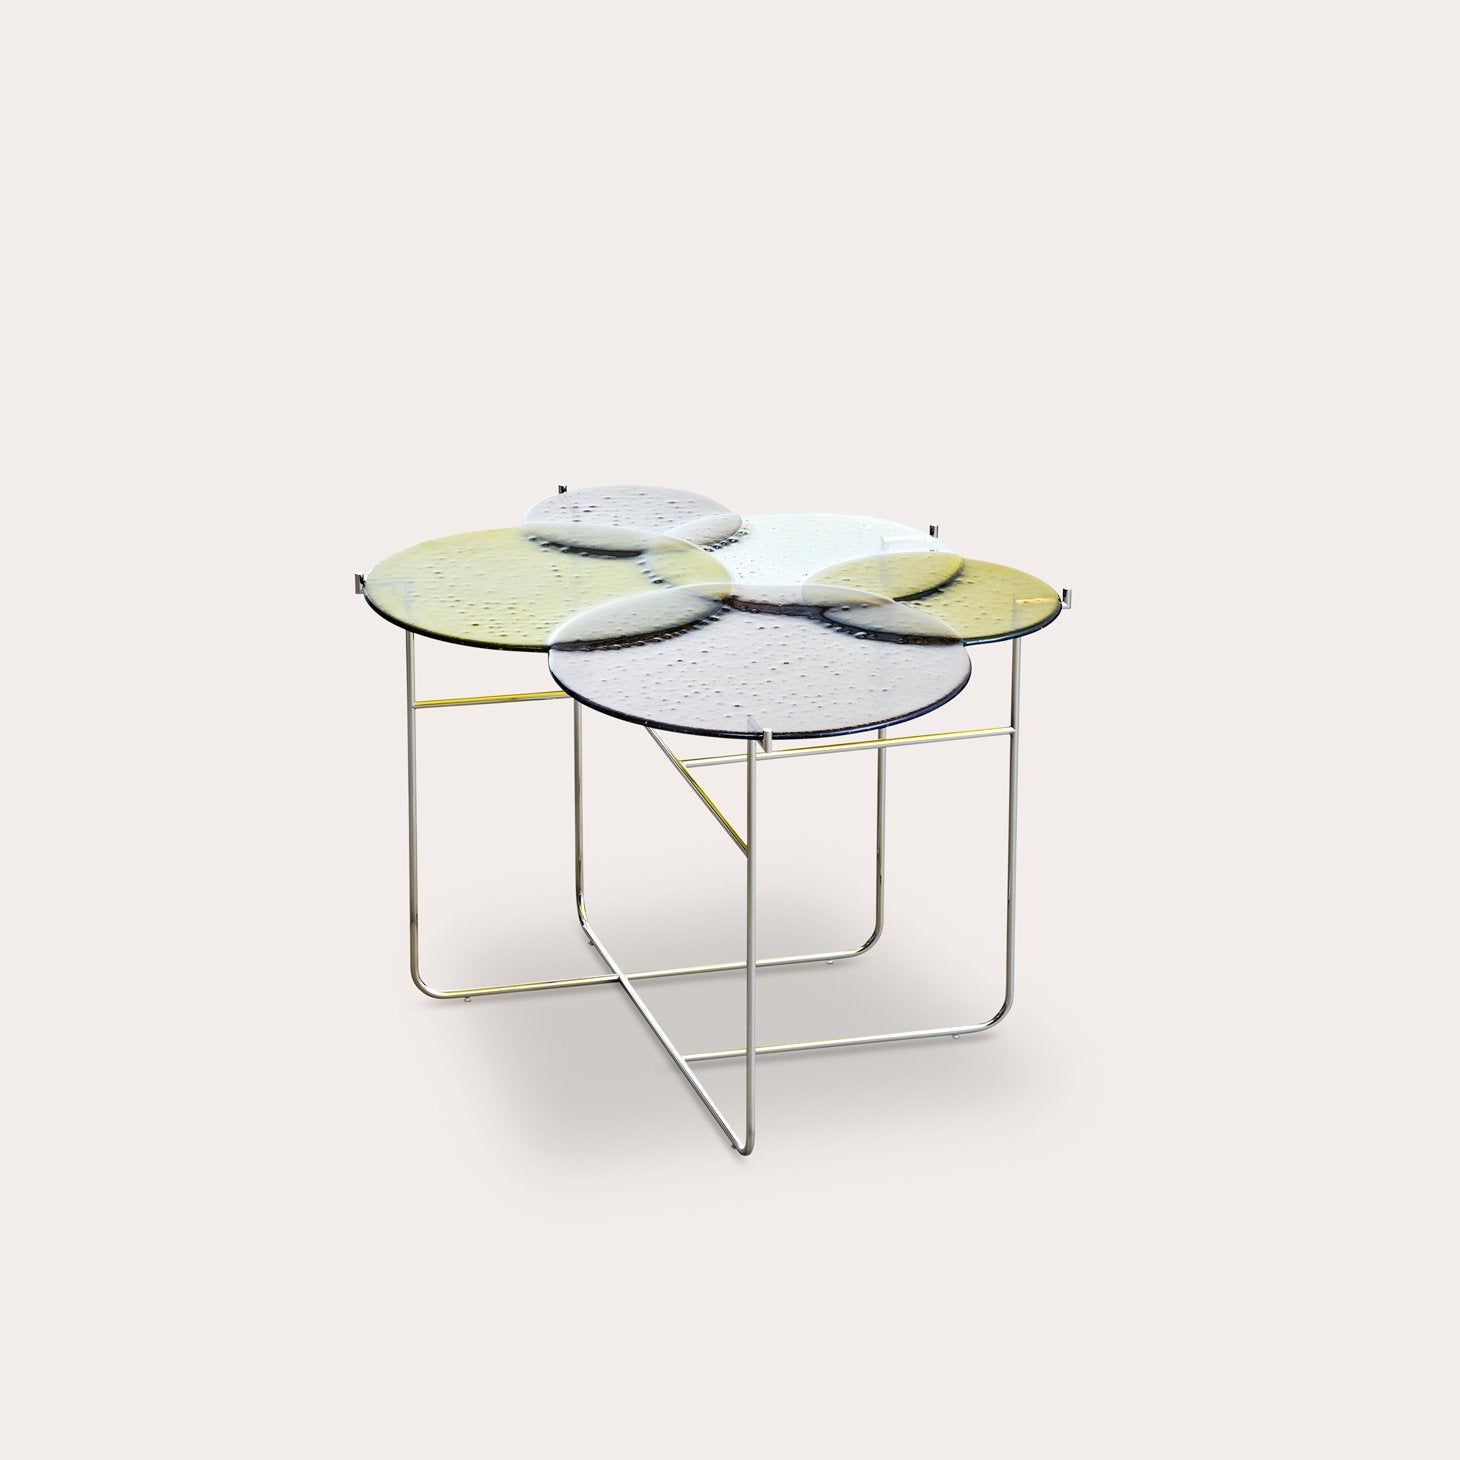 Pastille Tables Sebastian Herkner Designer Furniture Sku: 806-230-10008